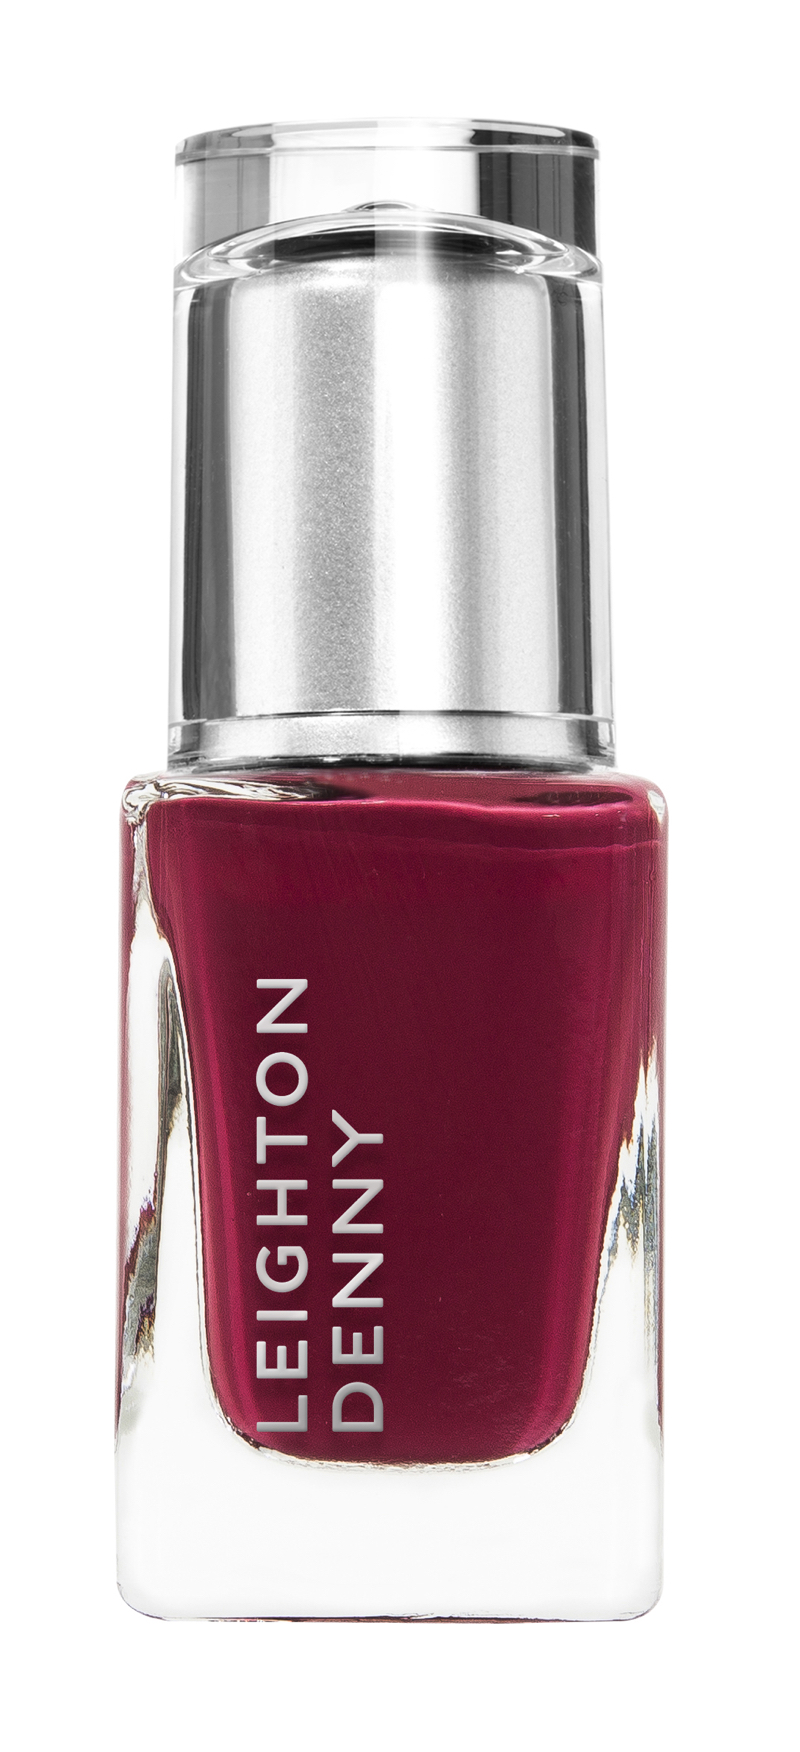 Leighton Denny Expert Nails releases AW17 Collection